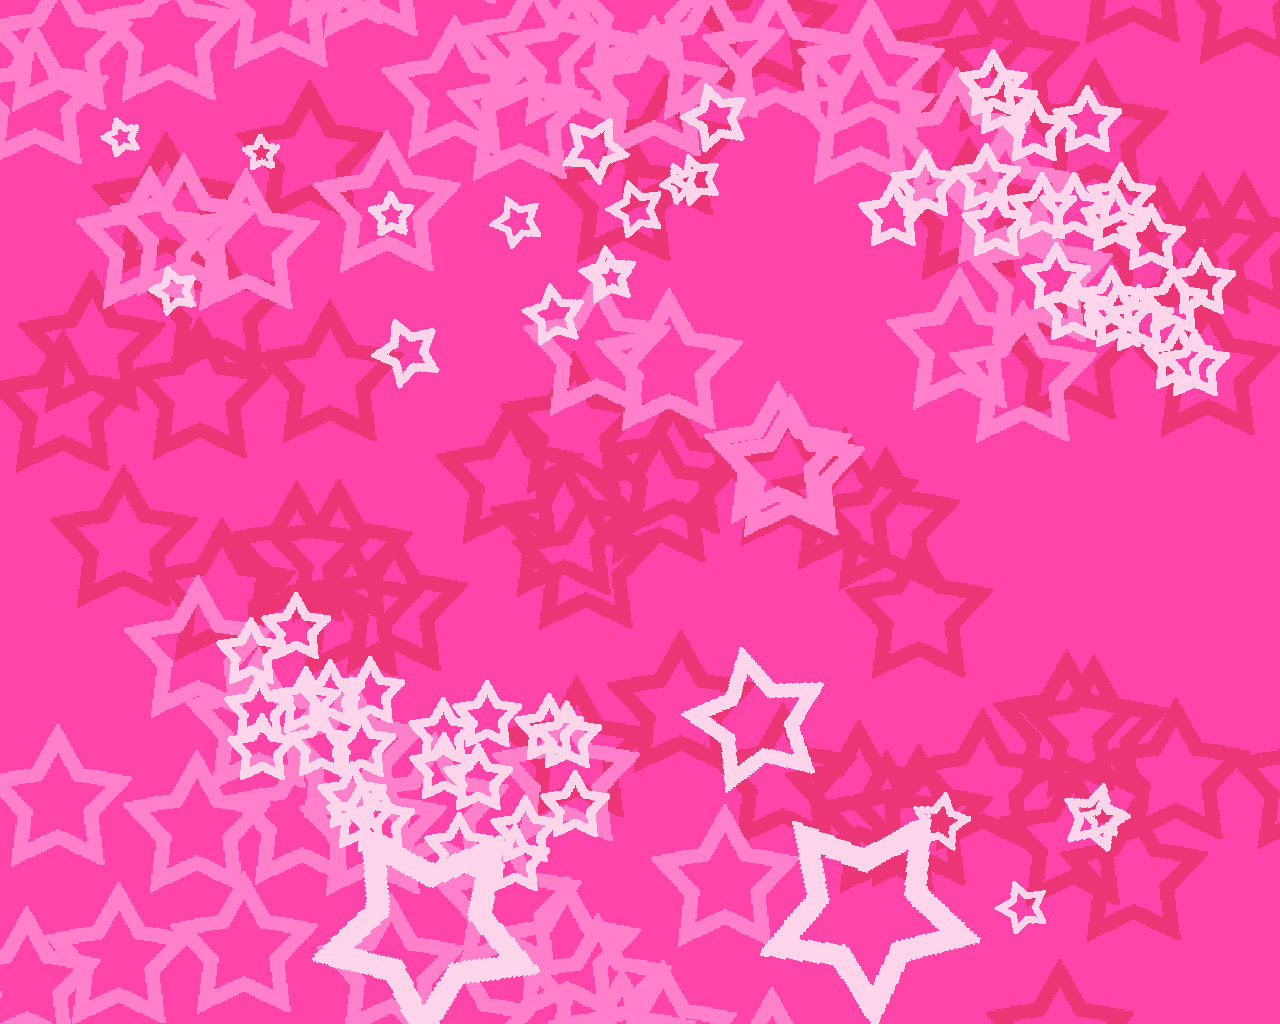 FULL WALLPAPER: Baby pink wallpaper